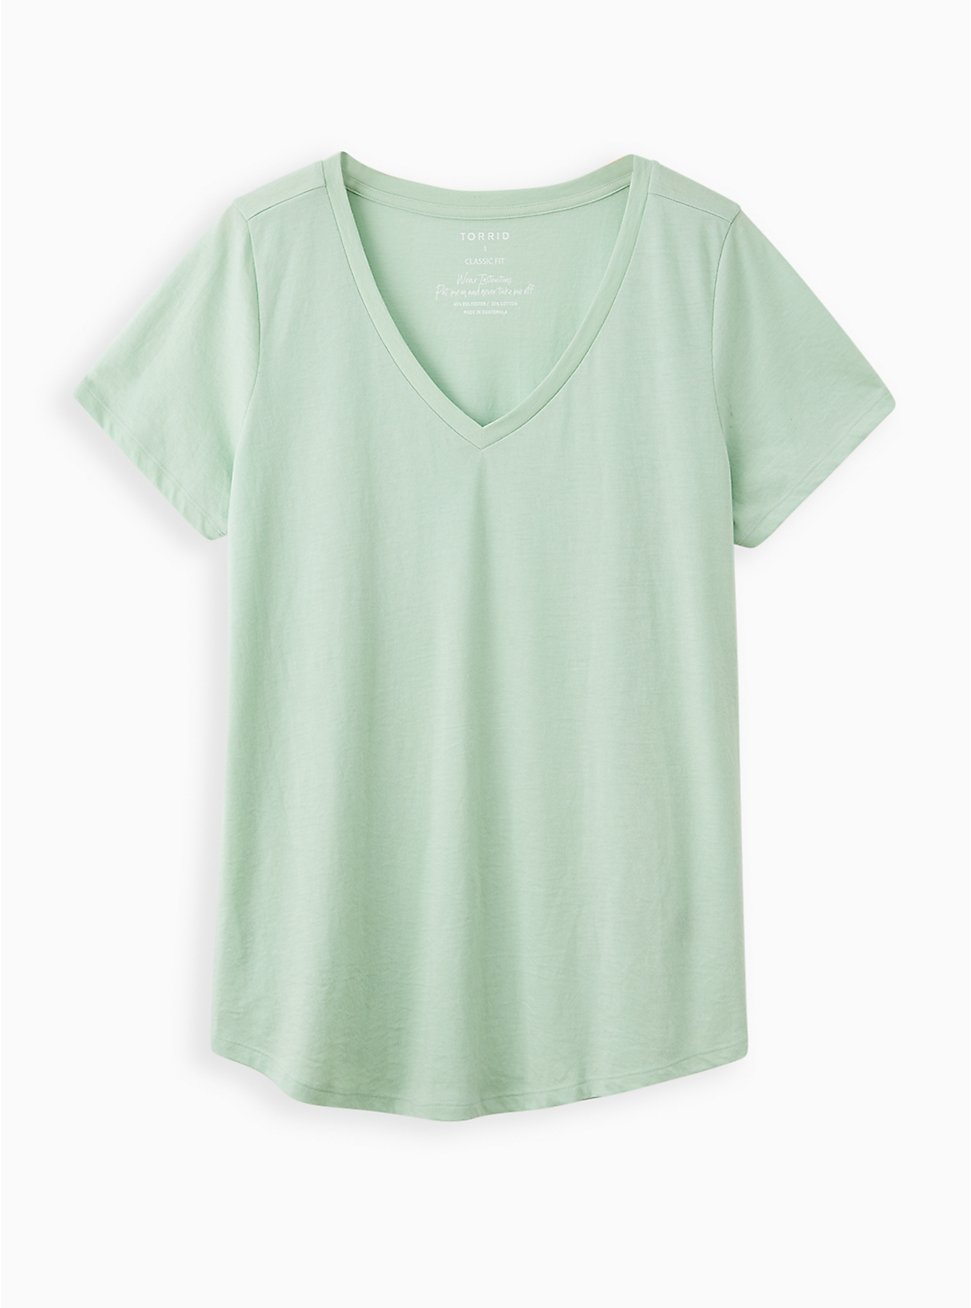 Everyday Tee - Signature Jersey Mint Green , GRAYED JADE, hi-res